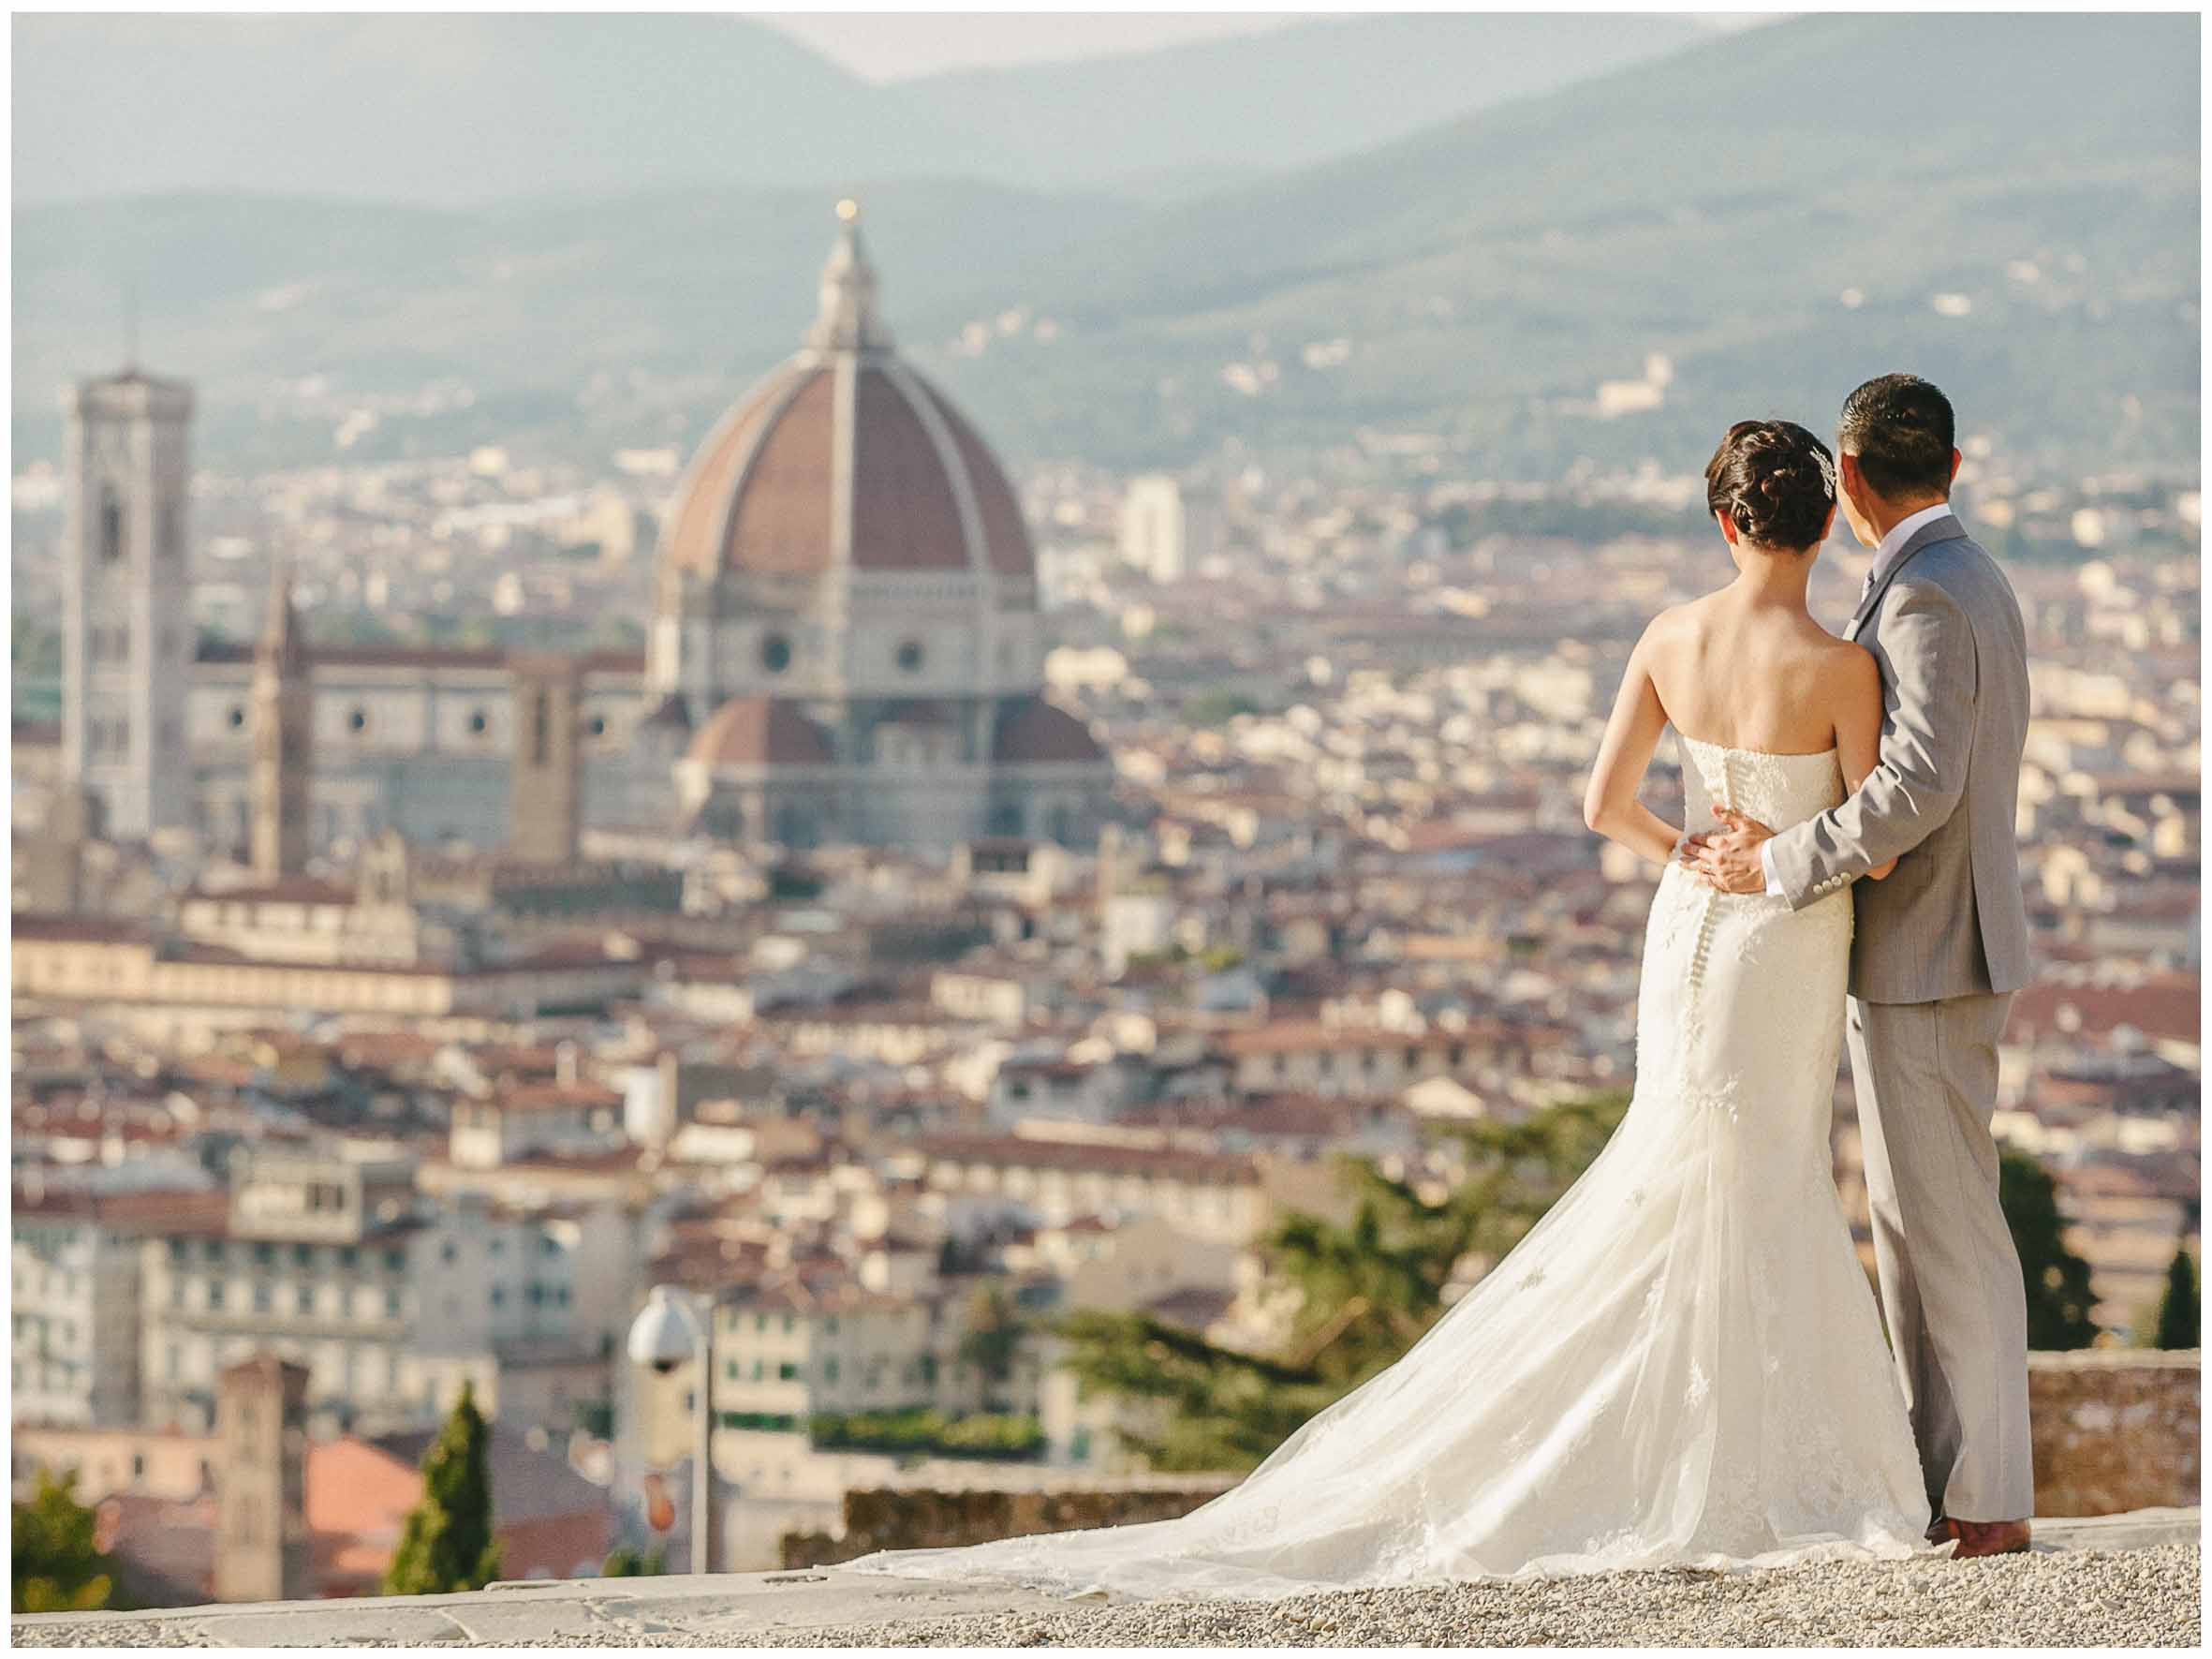 newlyweds hug each others with the dome of florence in the backgroud